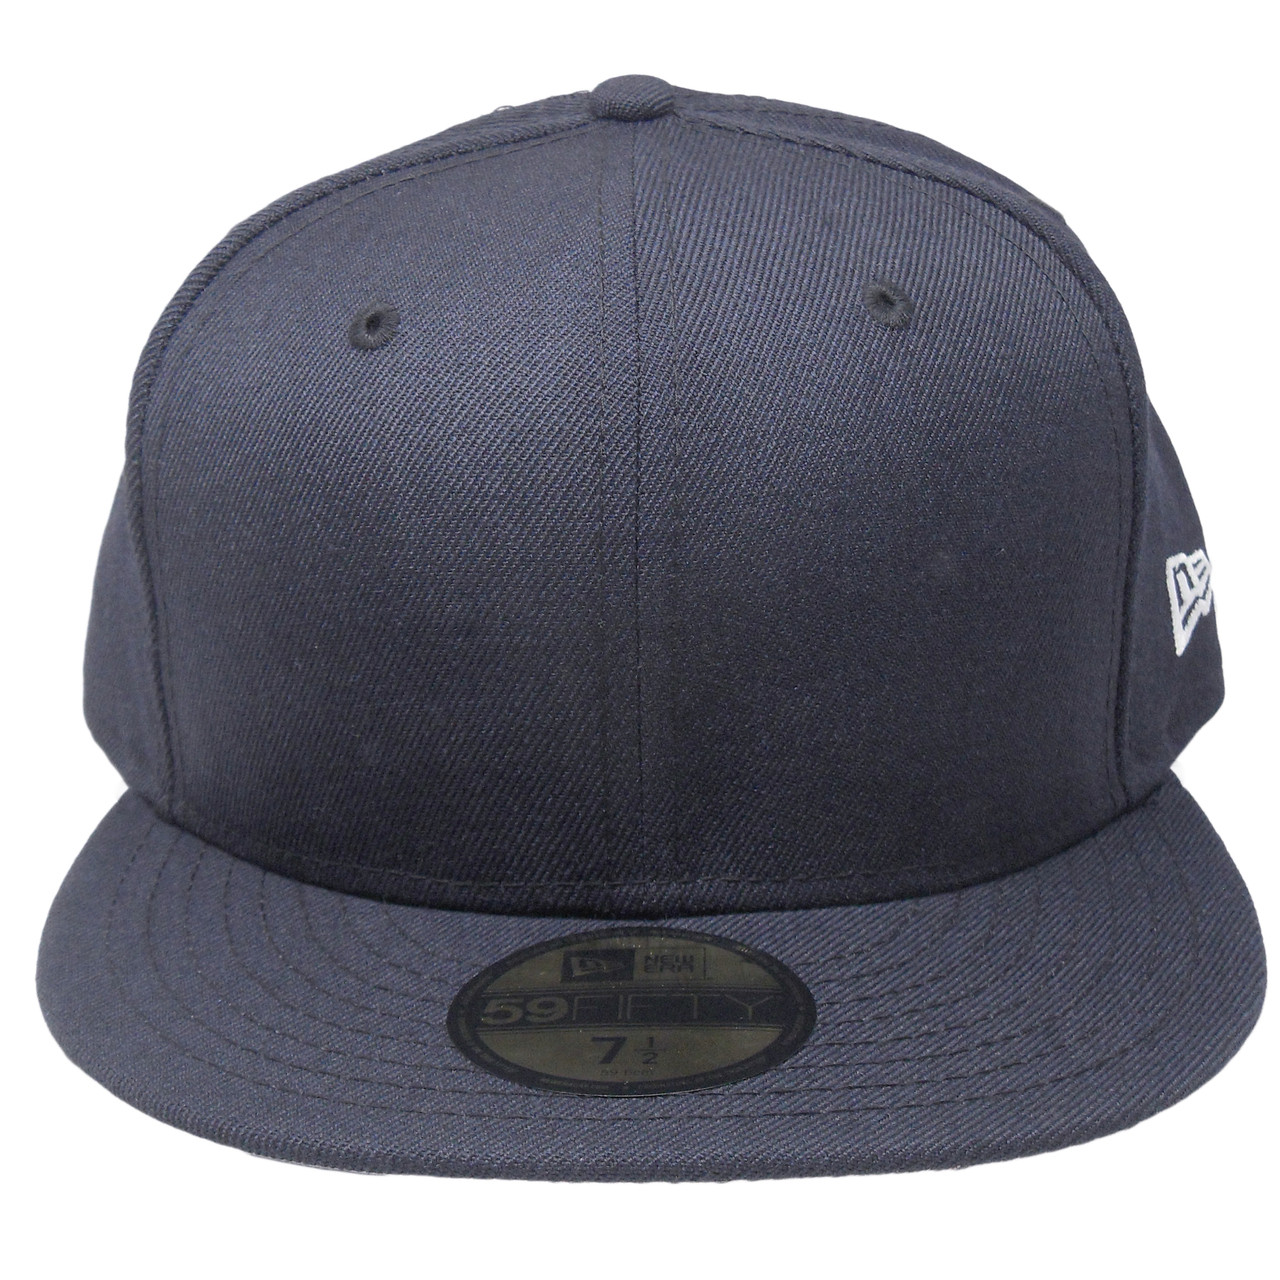 4be3fcc986e83 ... promo code new era 59fifty plain blank fitted hat navy b3fee fc579